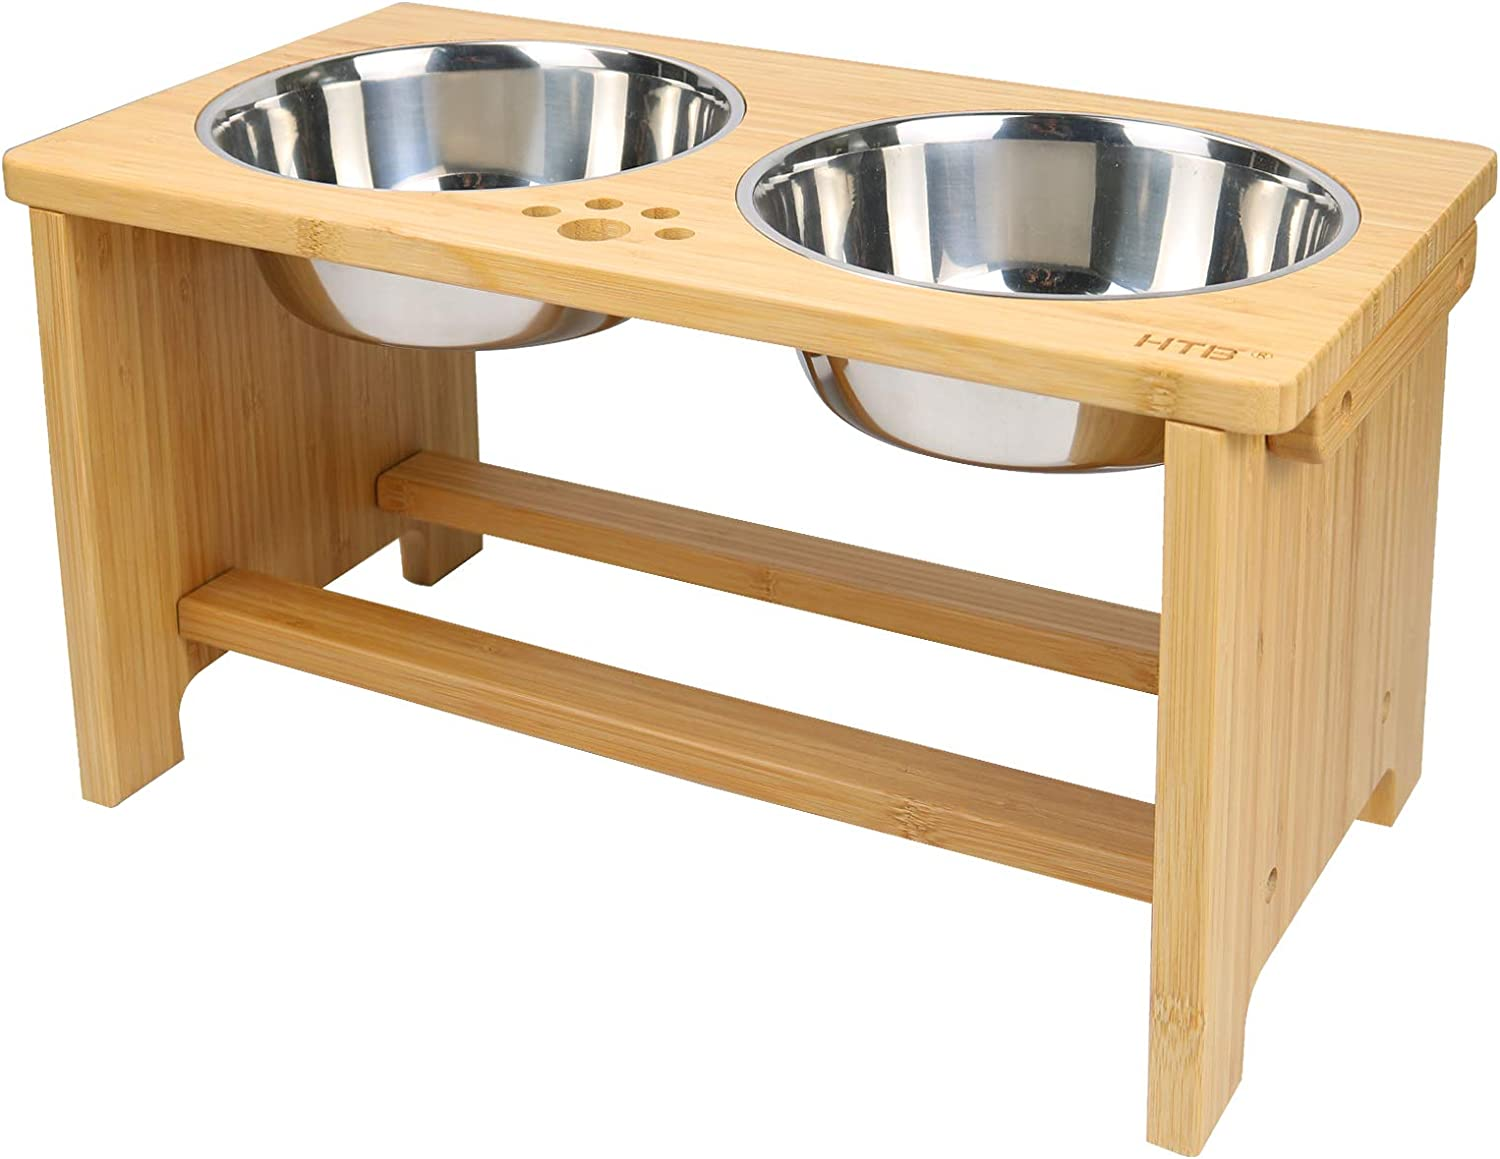 HTB Elevated Dog Bowls,Raised Dog Bowl Stand Feeder with 2 Stainless Steel Bowls,Dog Cat Pet Food Water Bowls